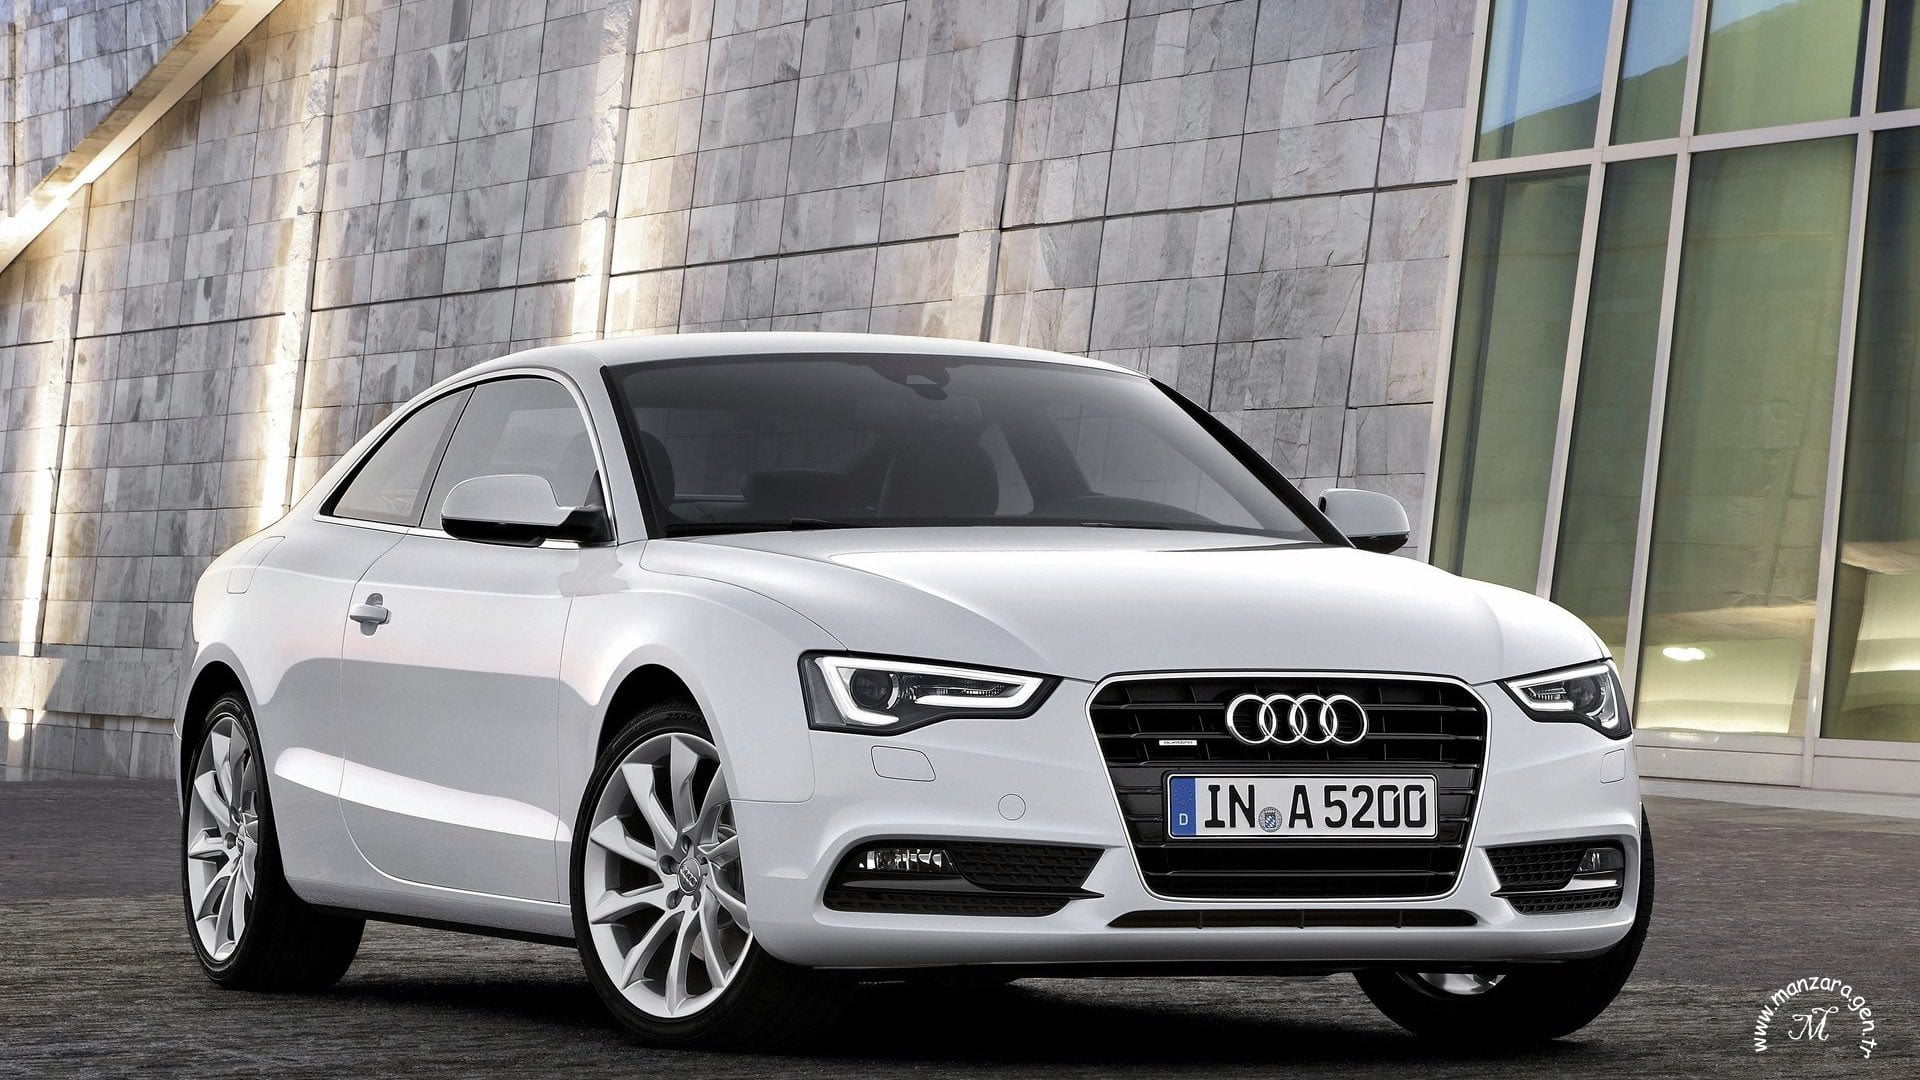 Audi A5 Coupe – 2011 – 4